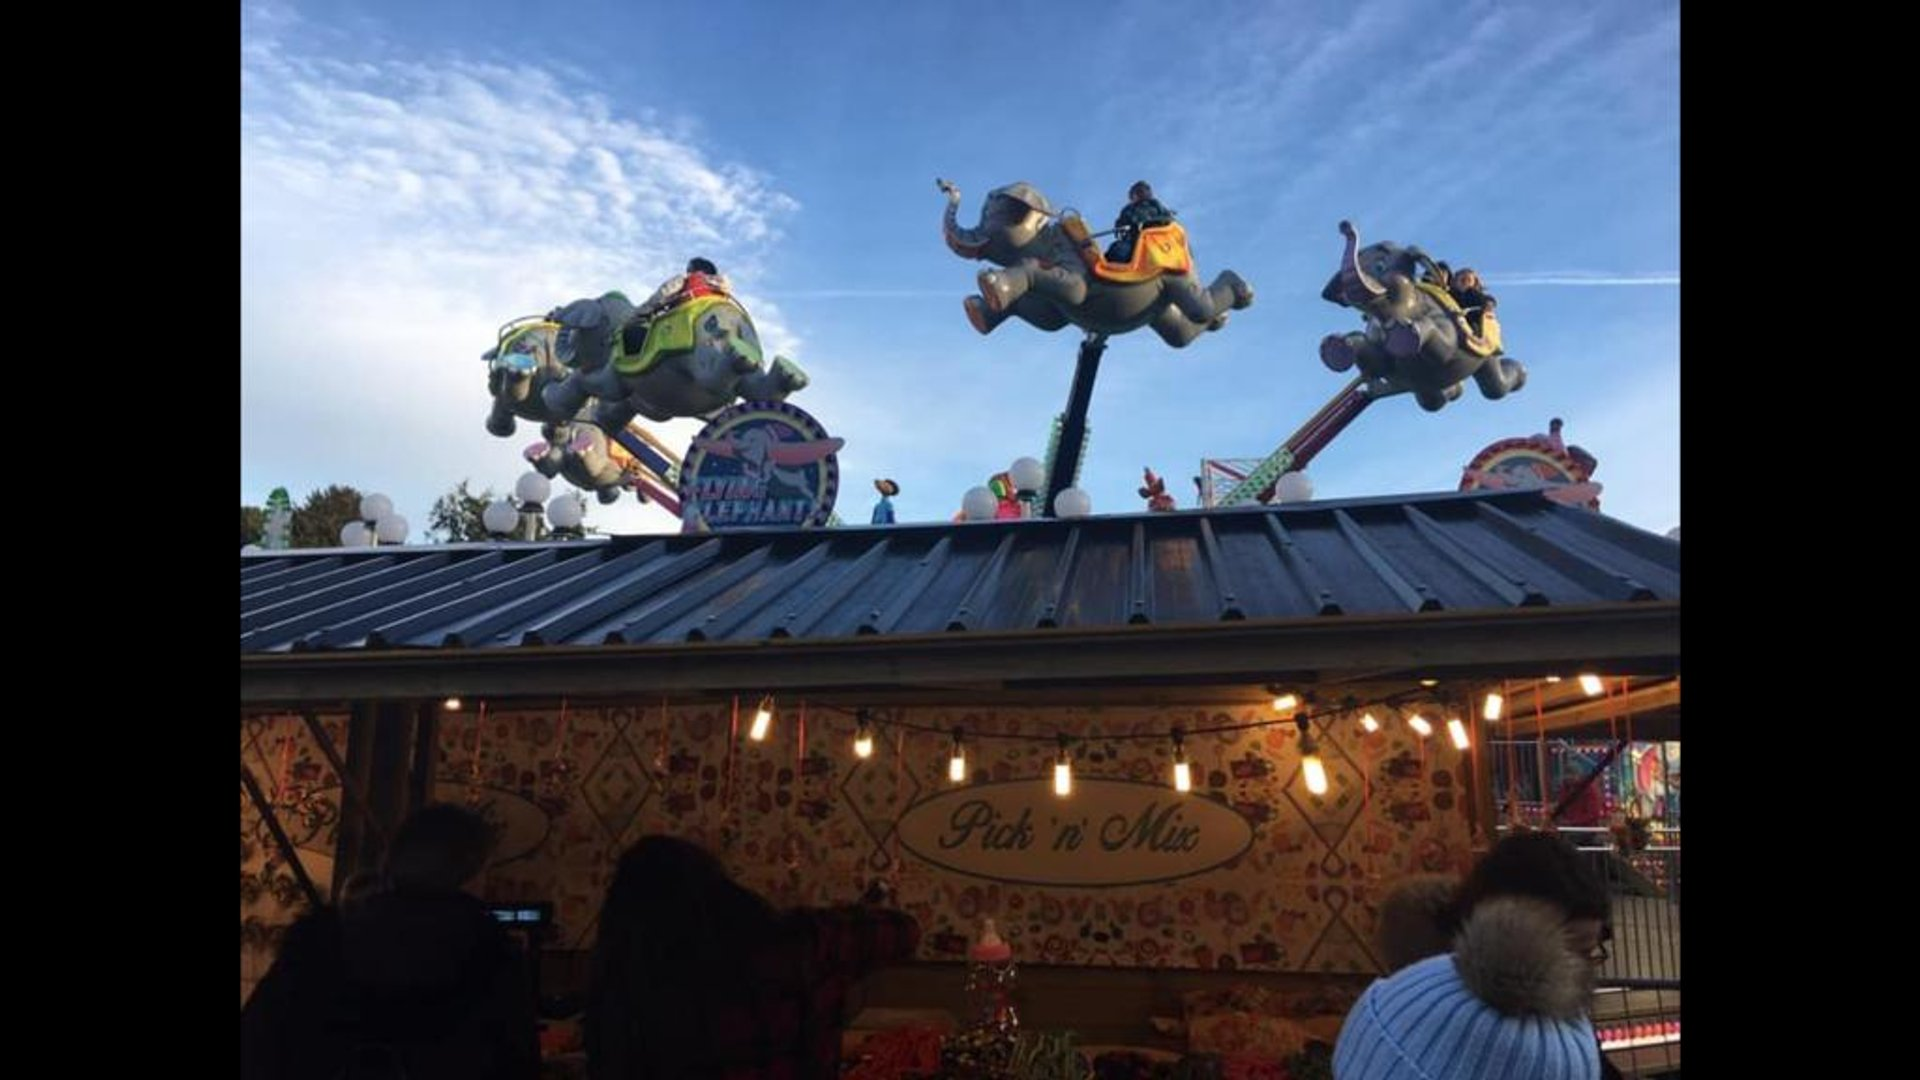 Rides at the Wicklow Christmas Market 2020